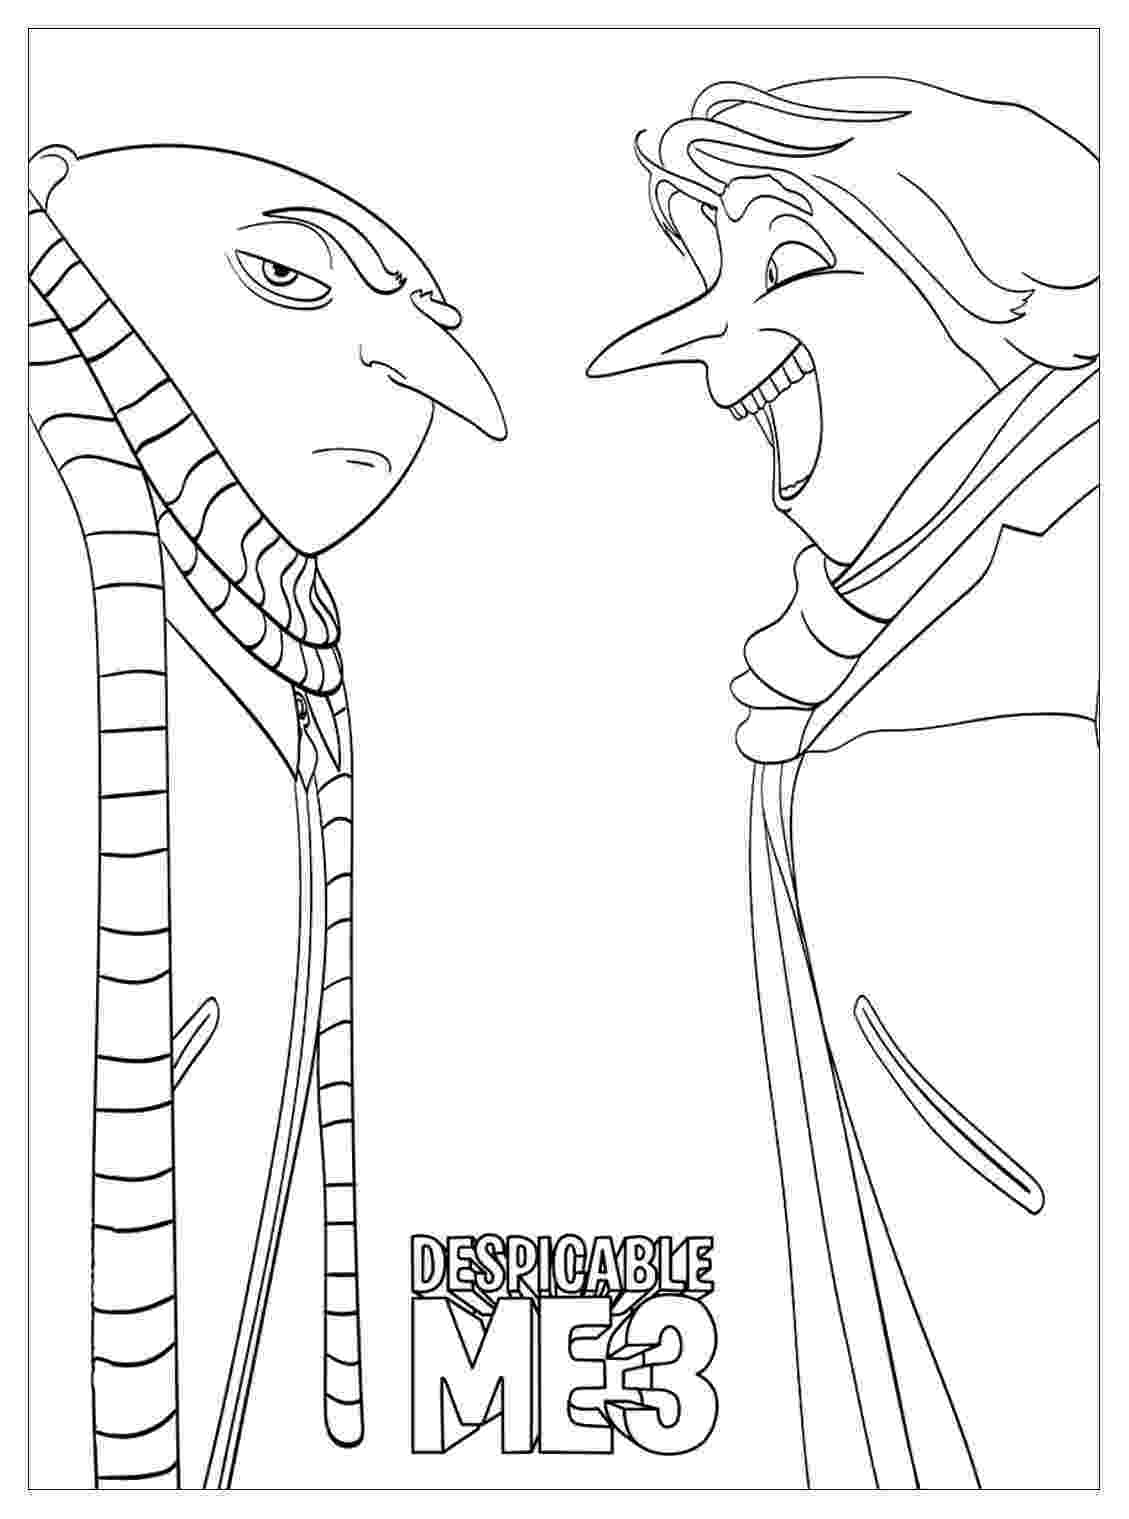 free coloring pages despicable me 51 best images about minions on pinterest coloring pages despicable coloring me free